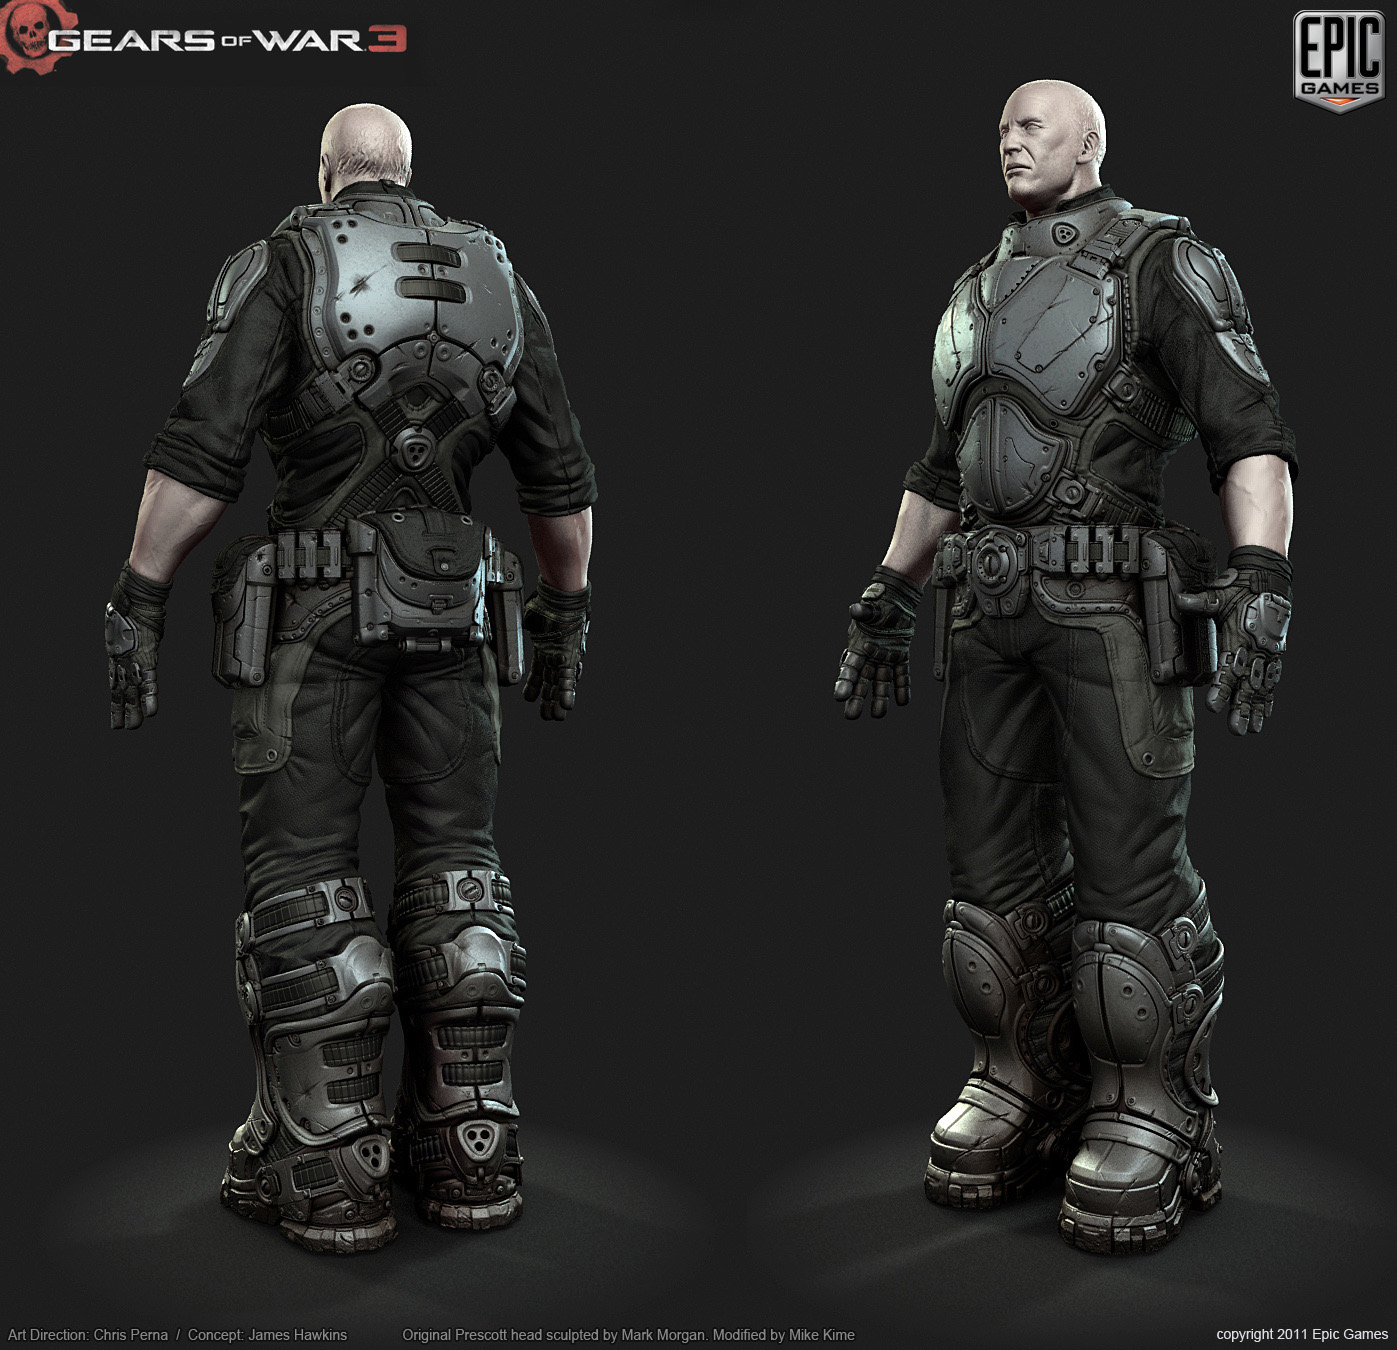 Gears Of War 3 Character Art Dump New Images Posted On